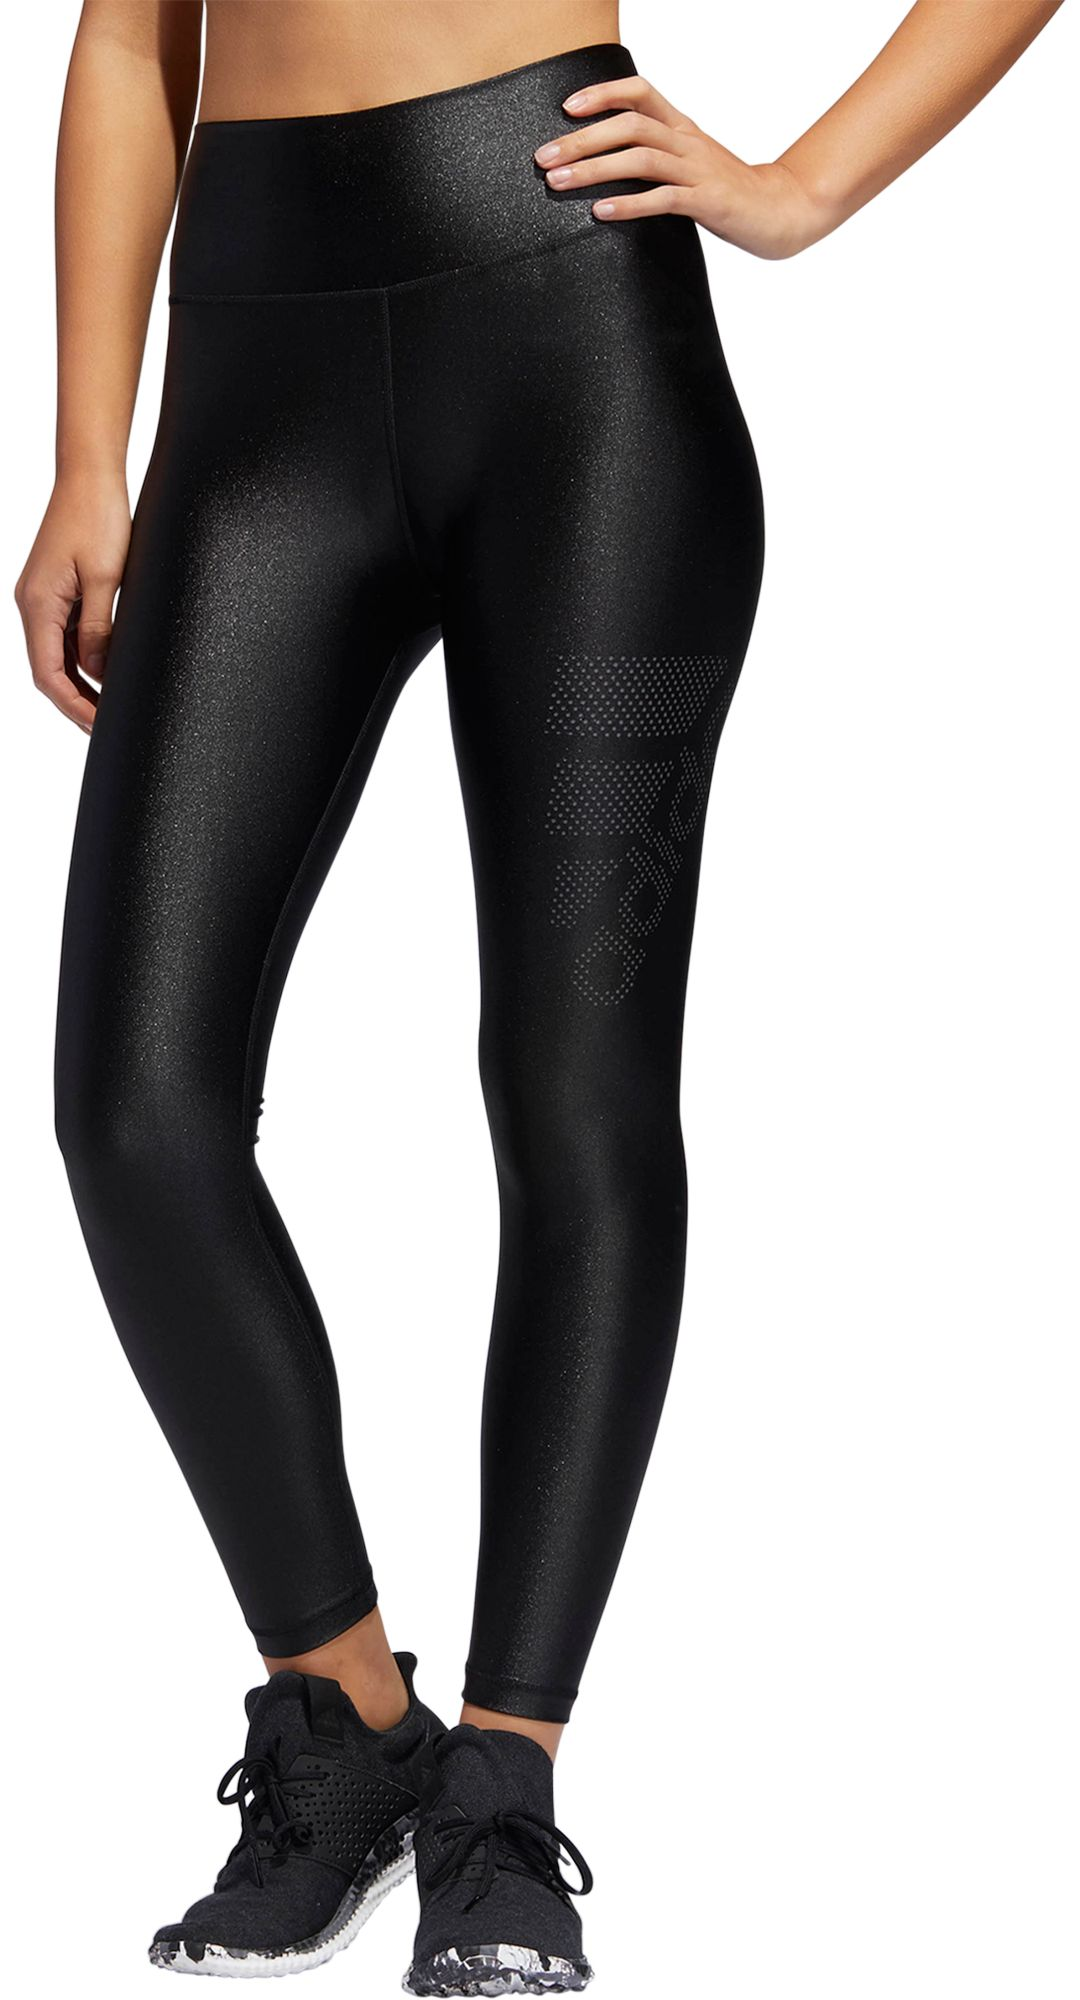 adidas Women's Believe This High Rise Matte Shine 78 Tights